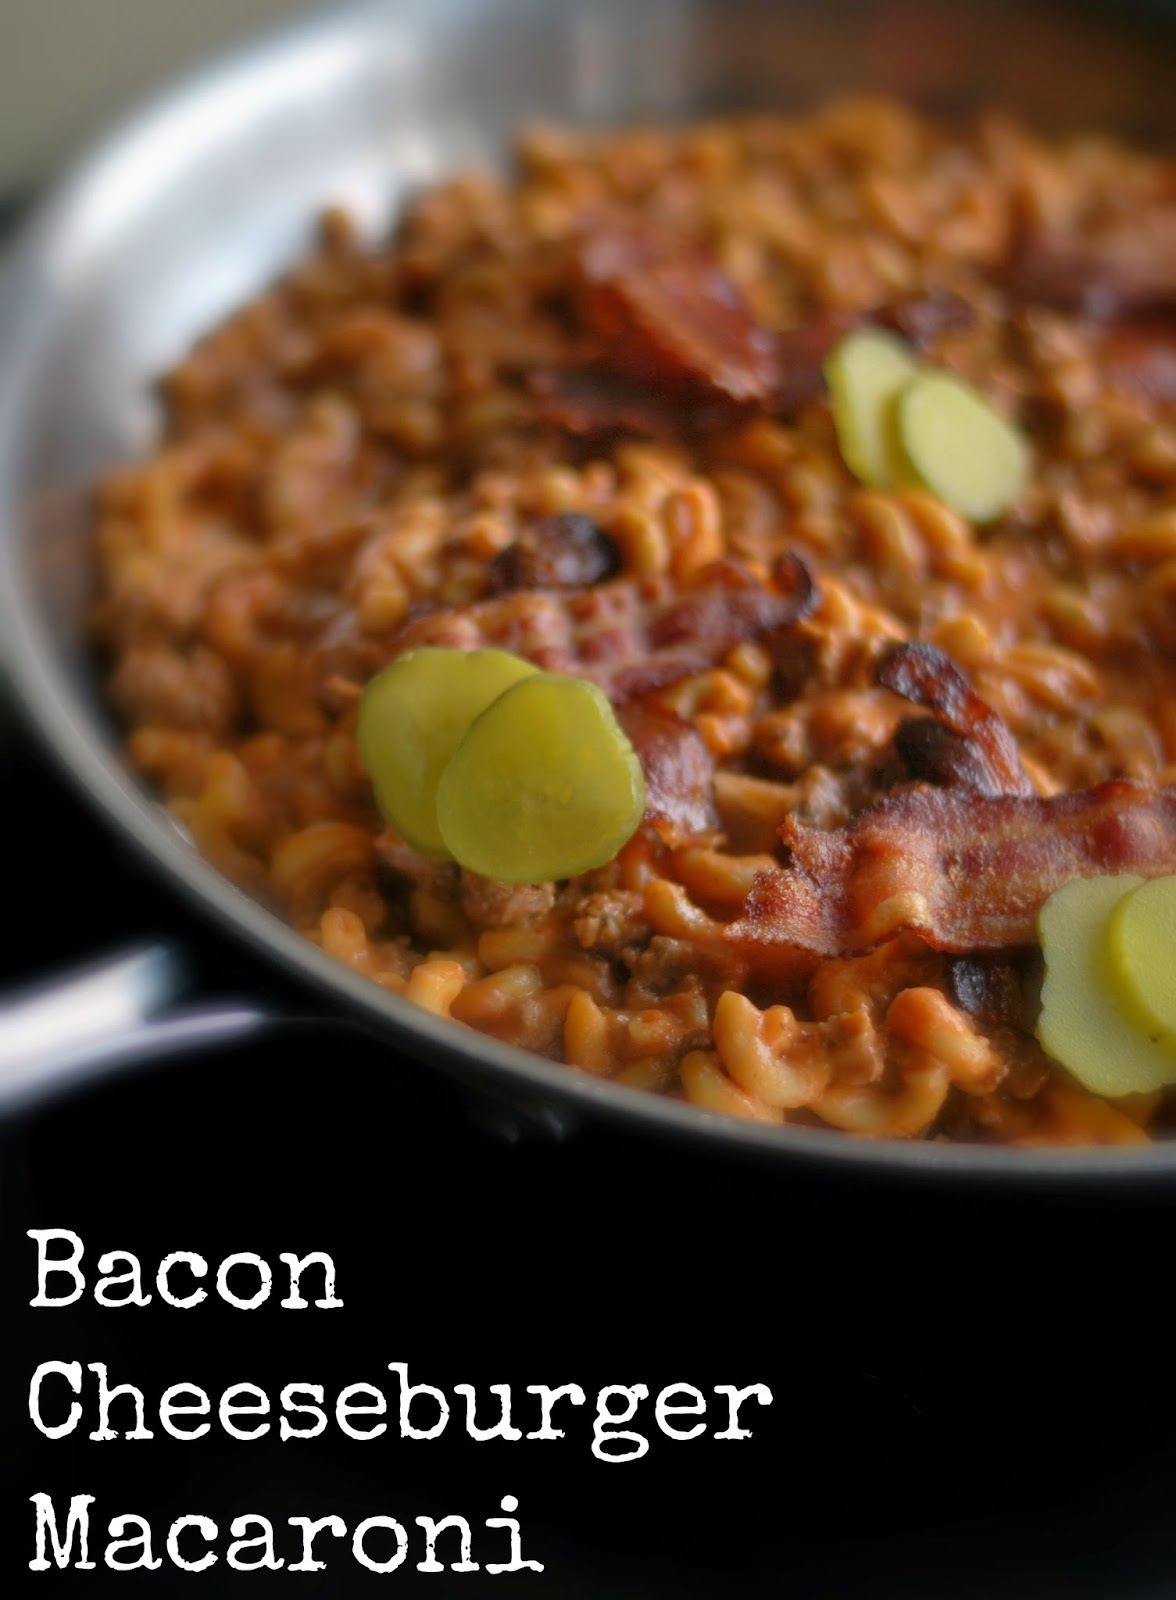 Bacon Cheeseburger Macaroni | Aunt Bee's Recipes